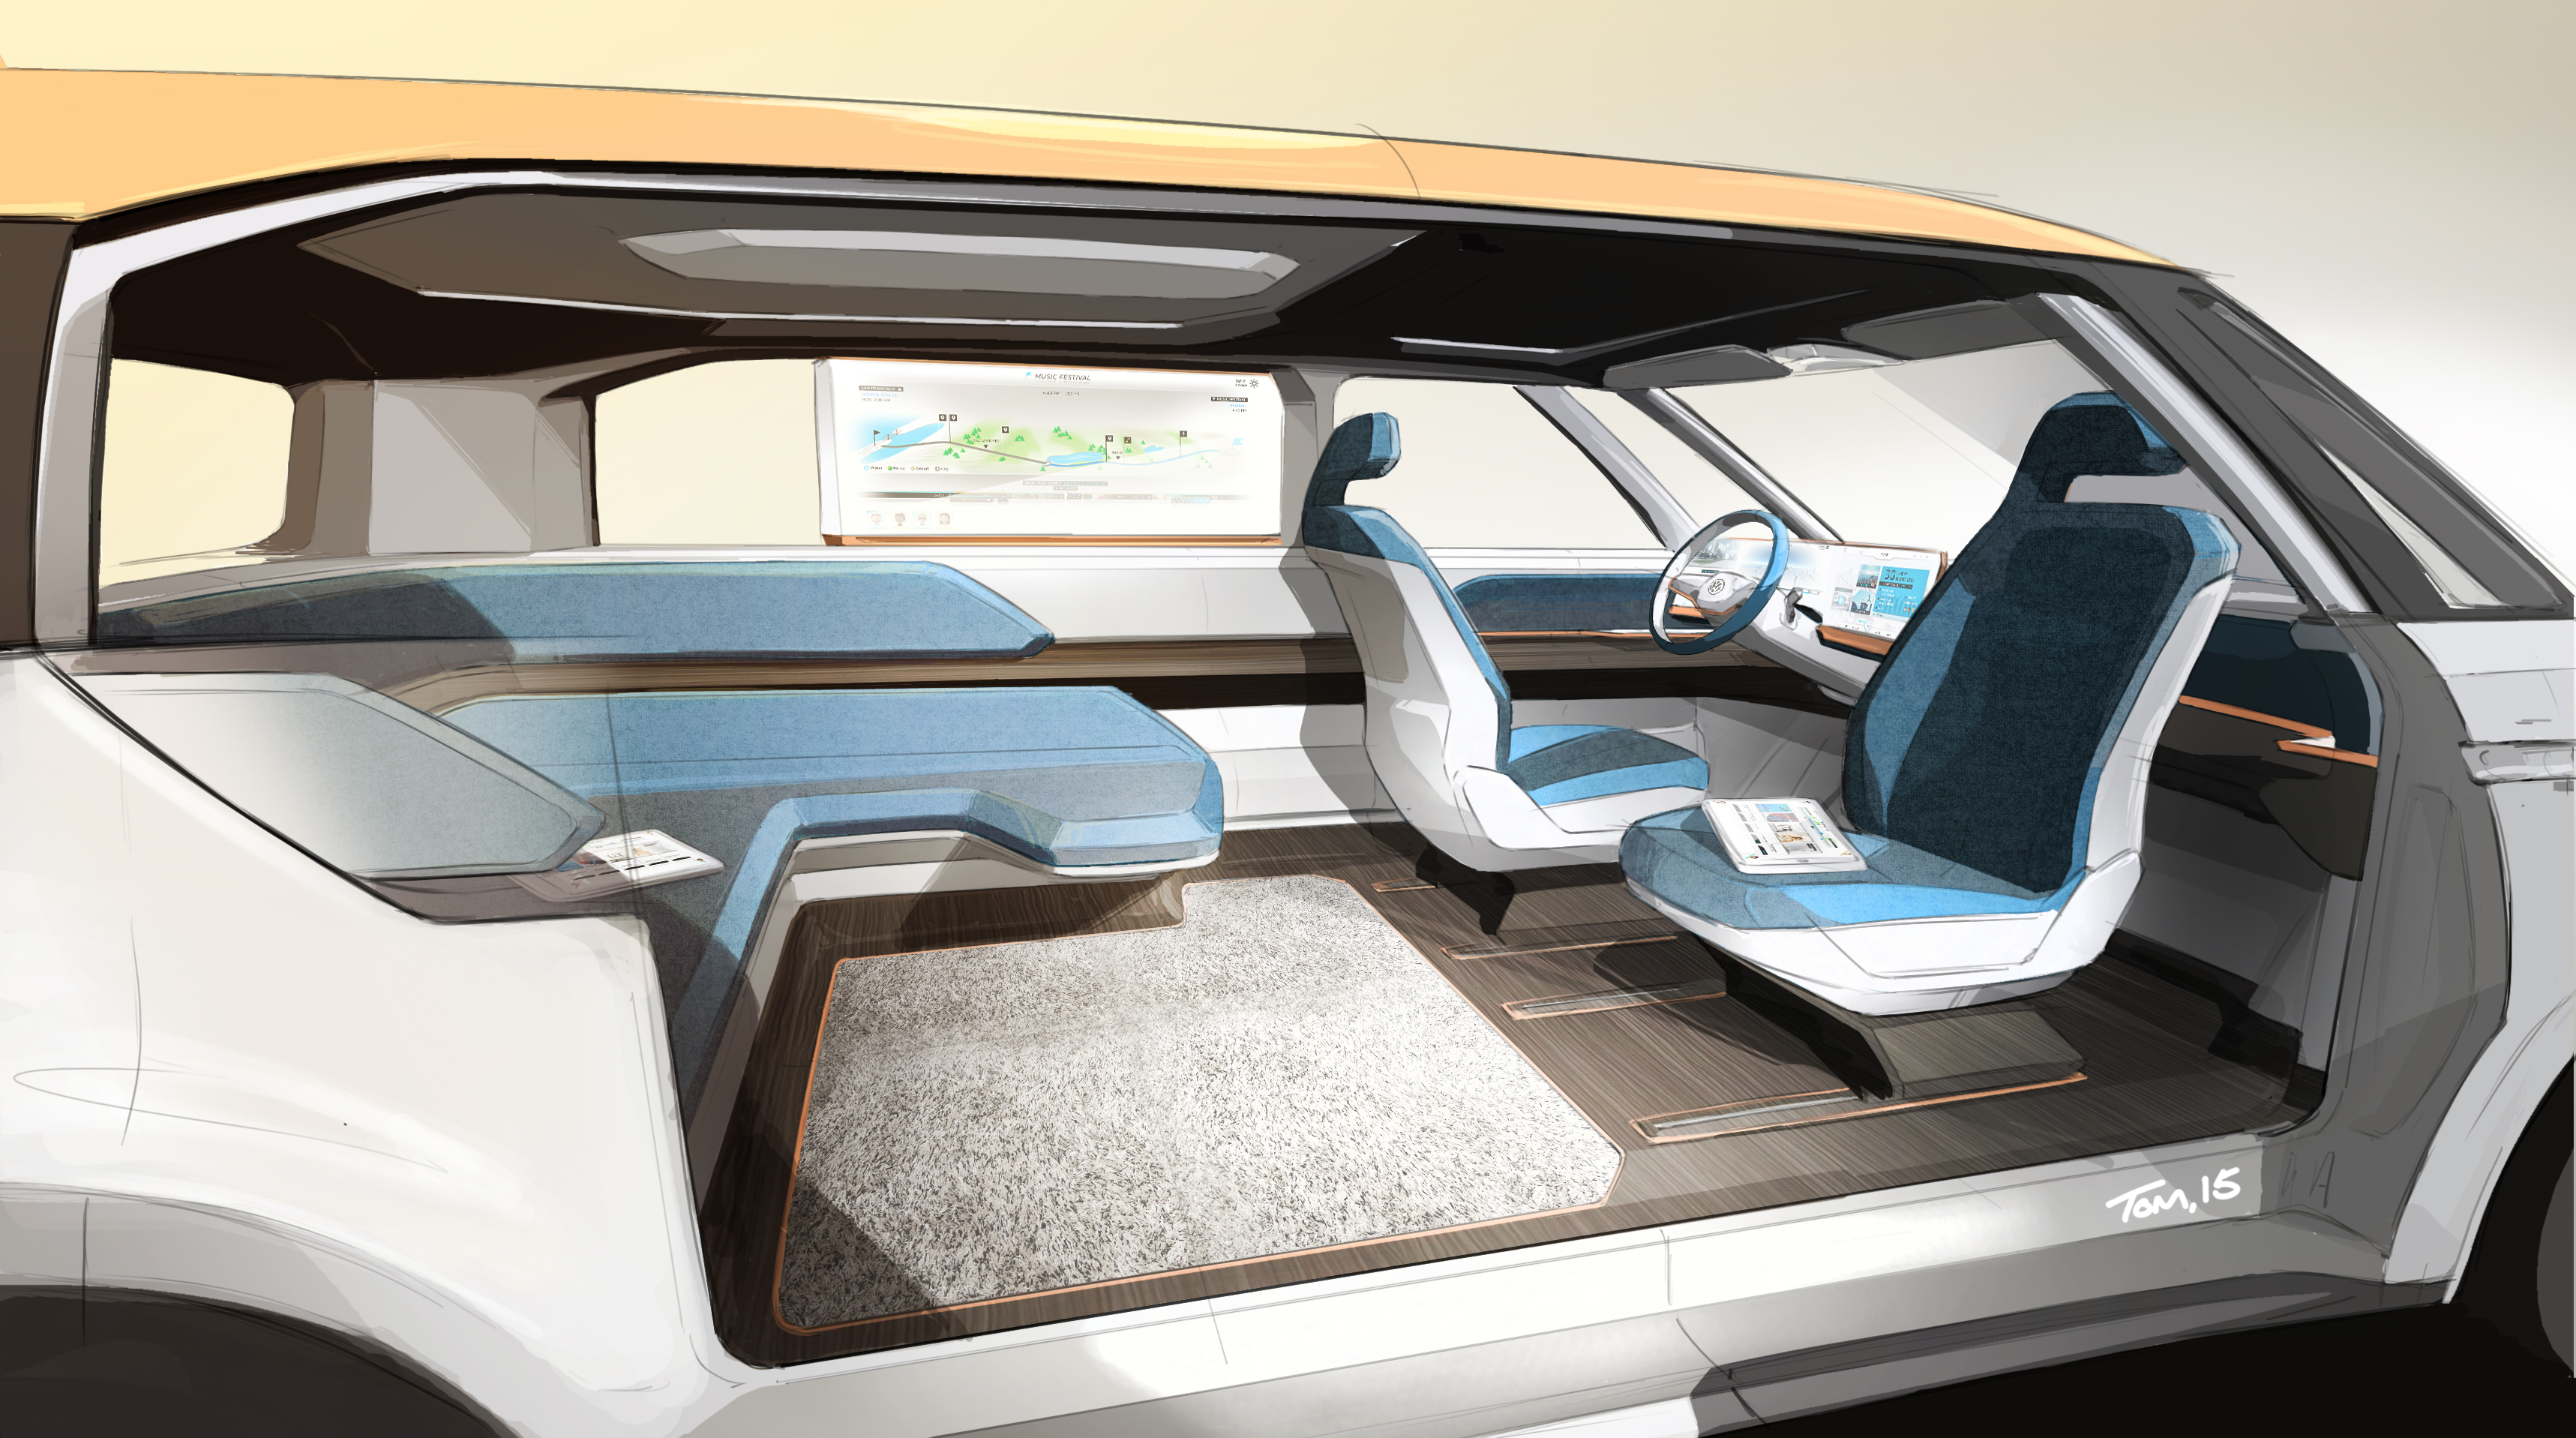 Volkswagen S Electric Bus Concept Is A Groovy Far Out Vision For